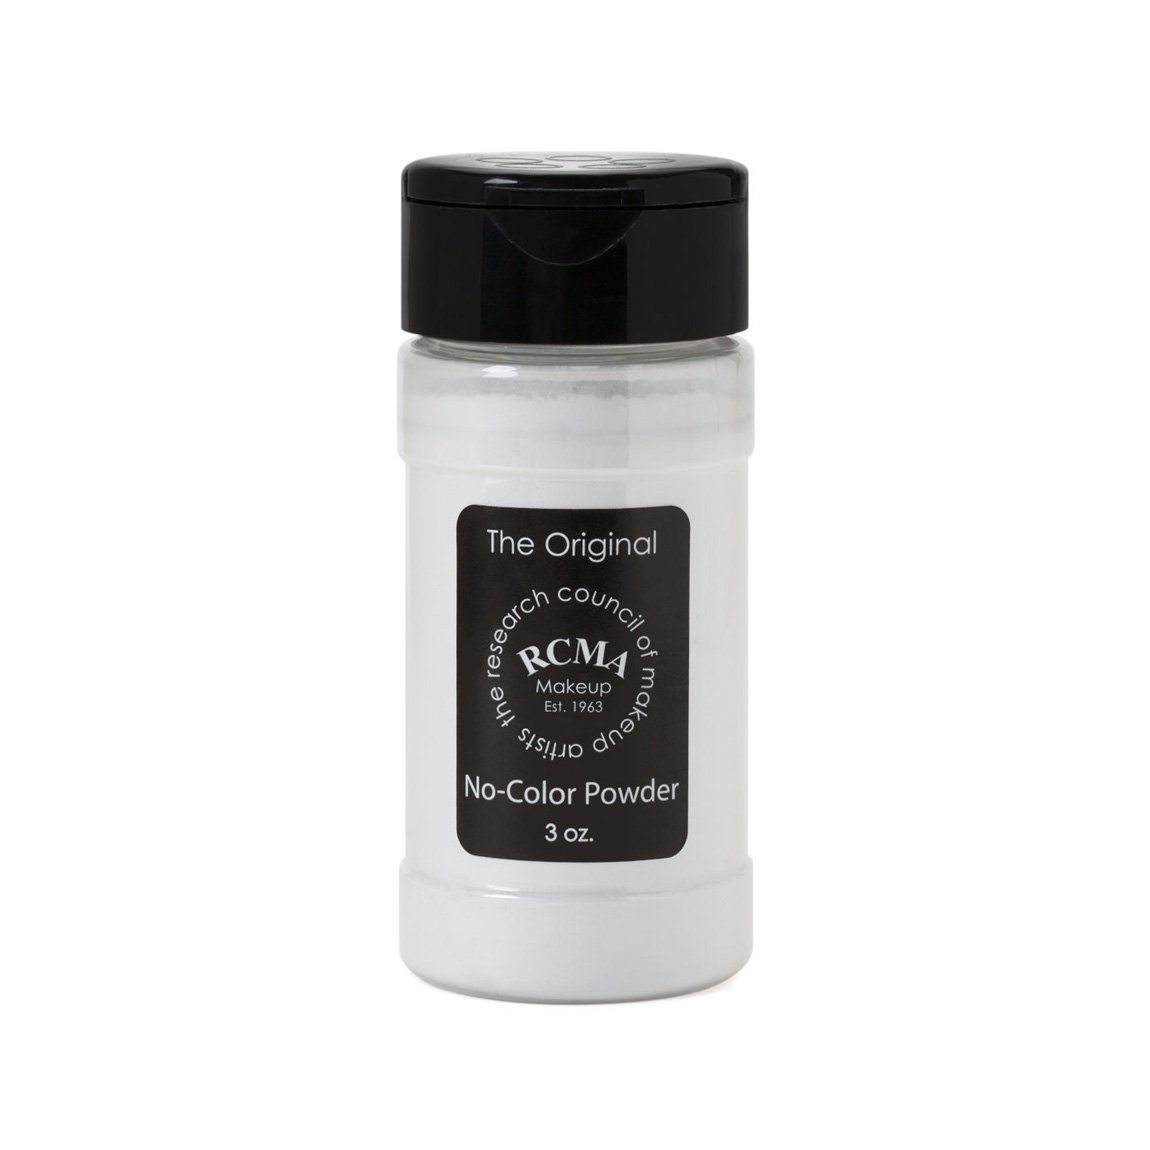 RCMA Makeup No Color Powder 3 oz. product smear.